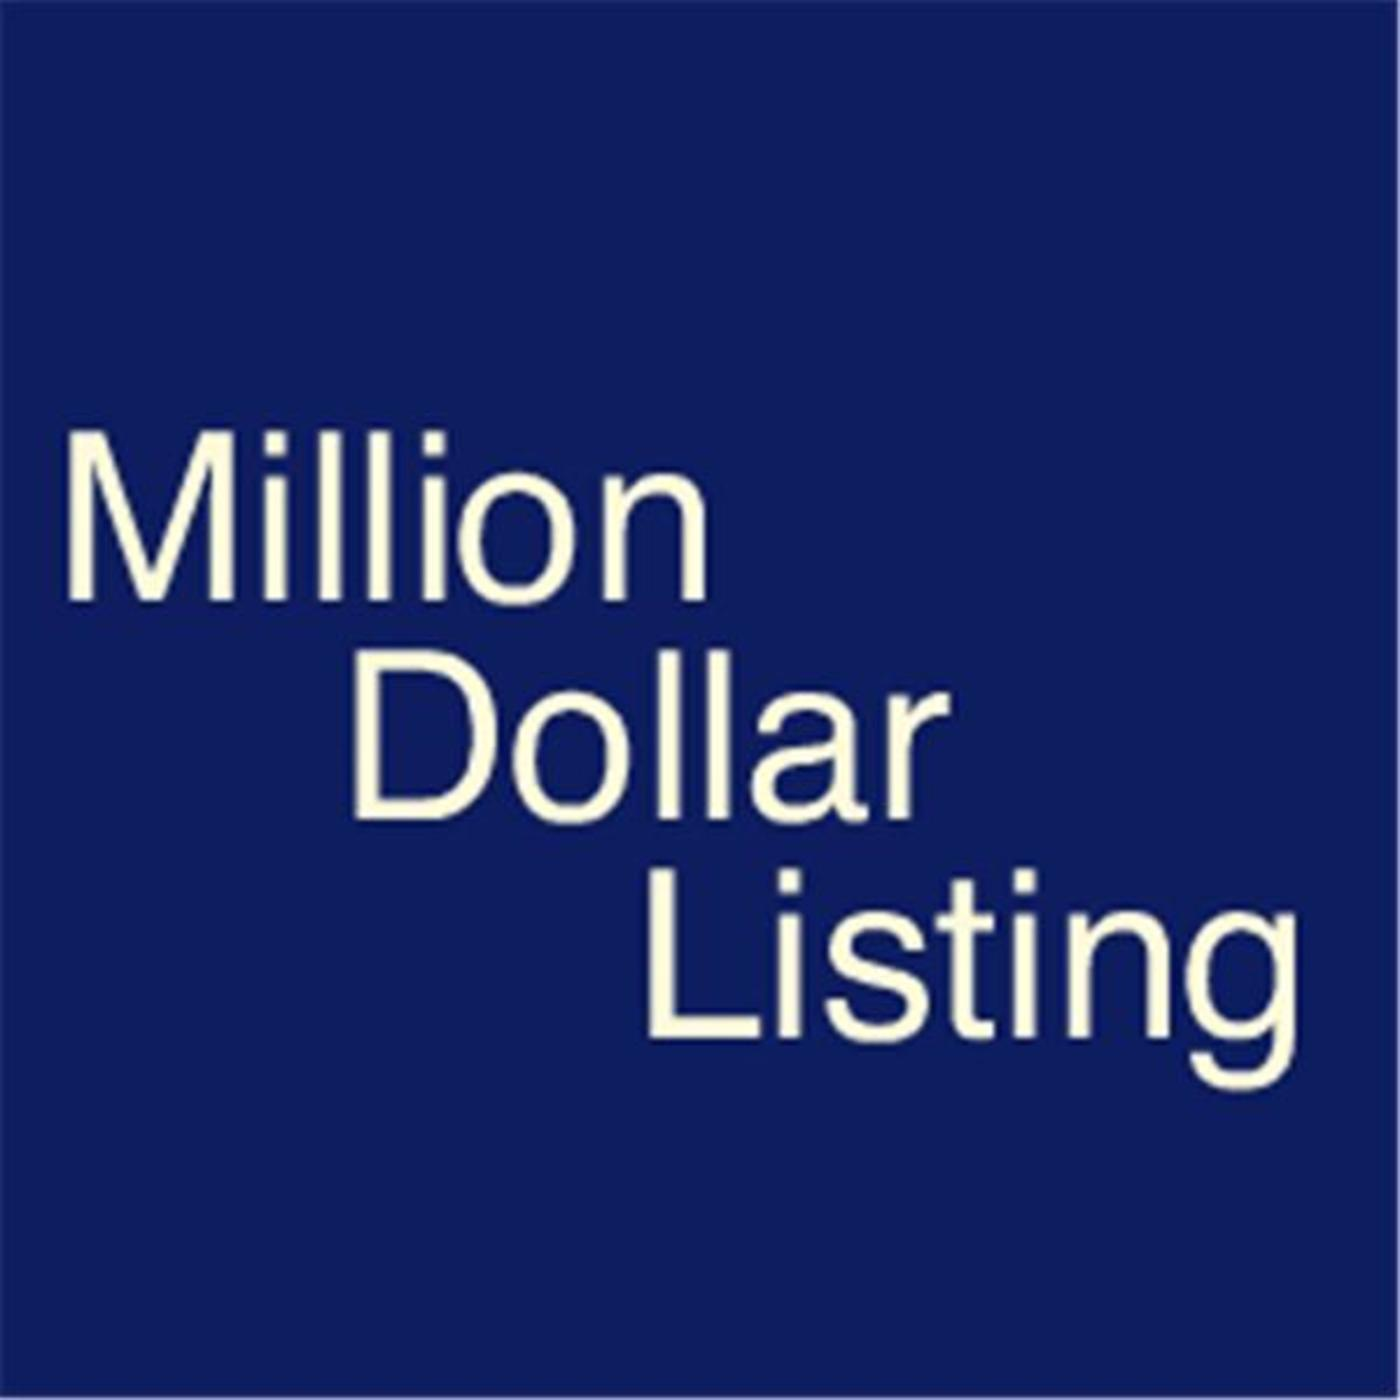 Million Dollar Listing Radio Show